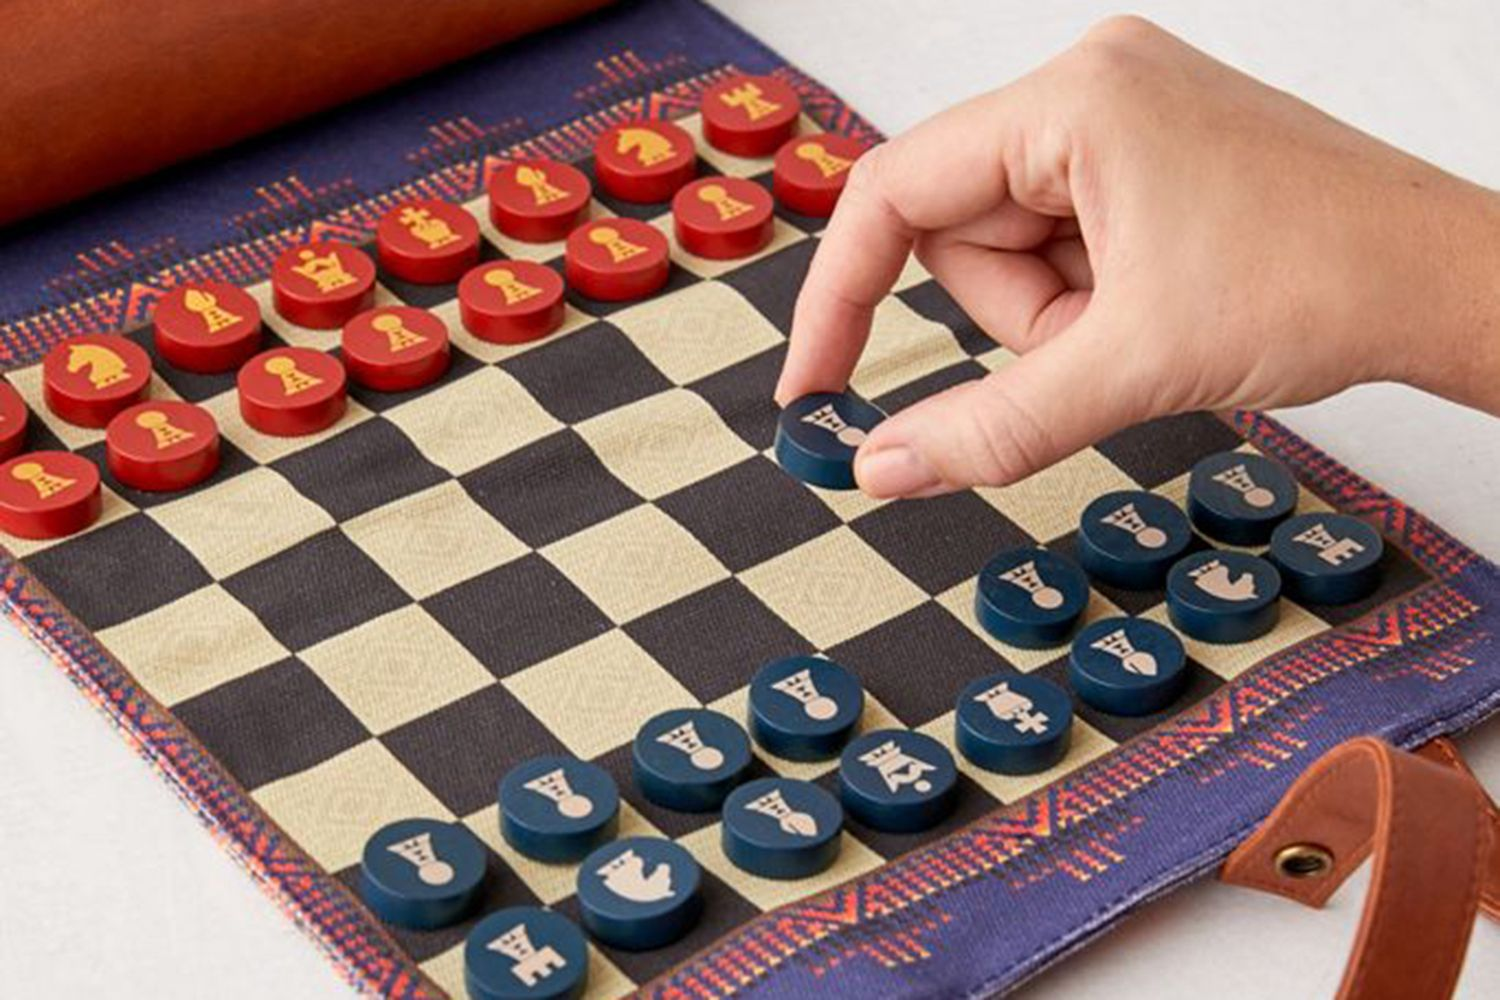 Roll-Up Chess And Checkers Set